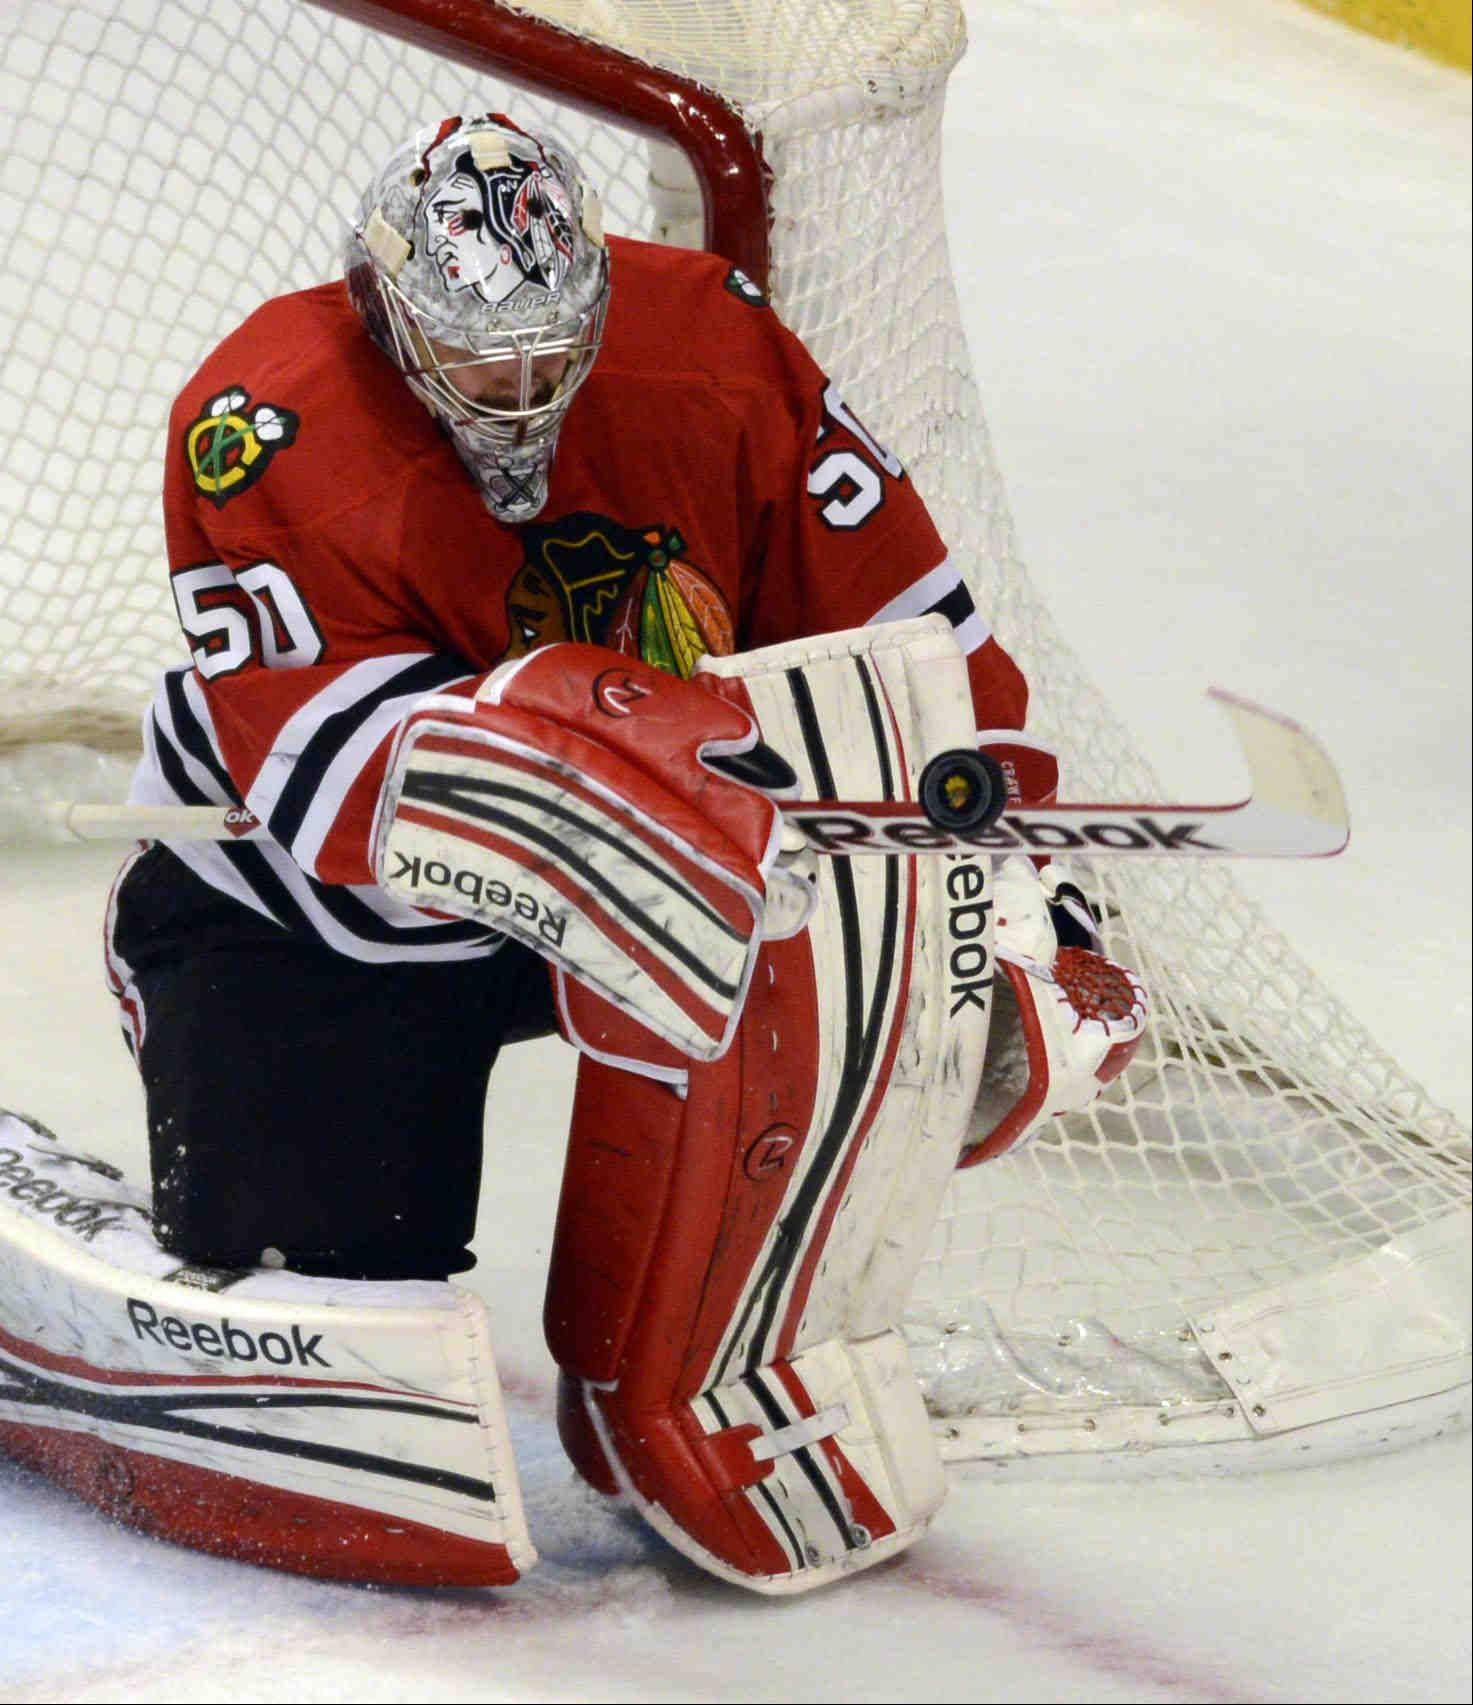 Blackhawks know it will be tougher in L.A.